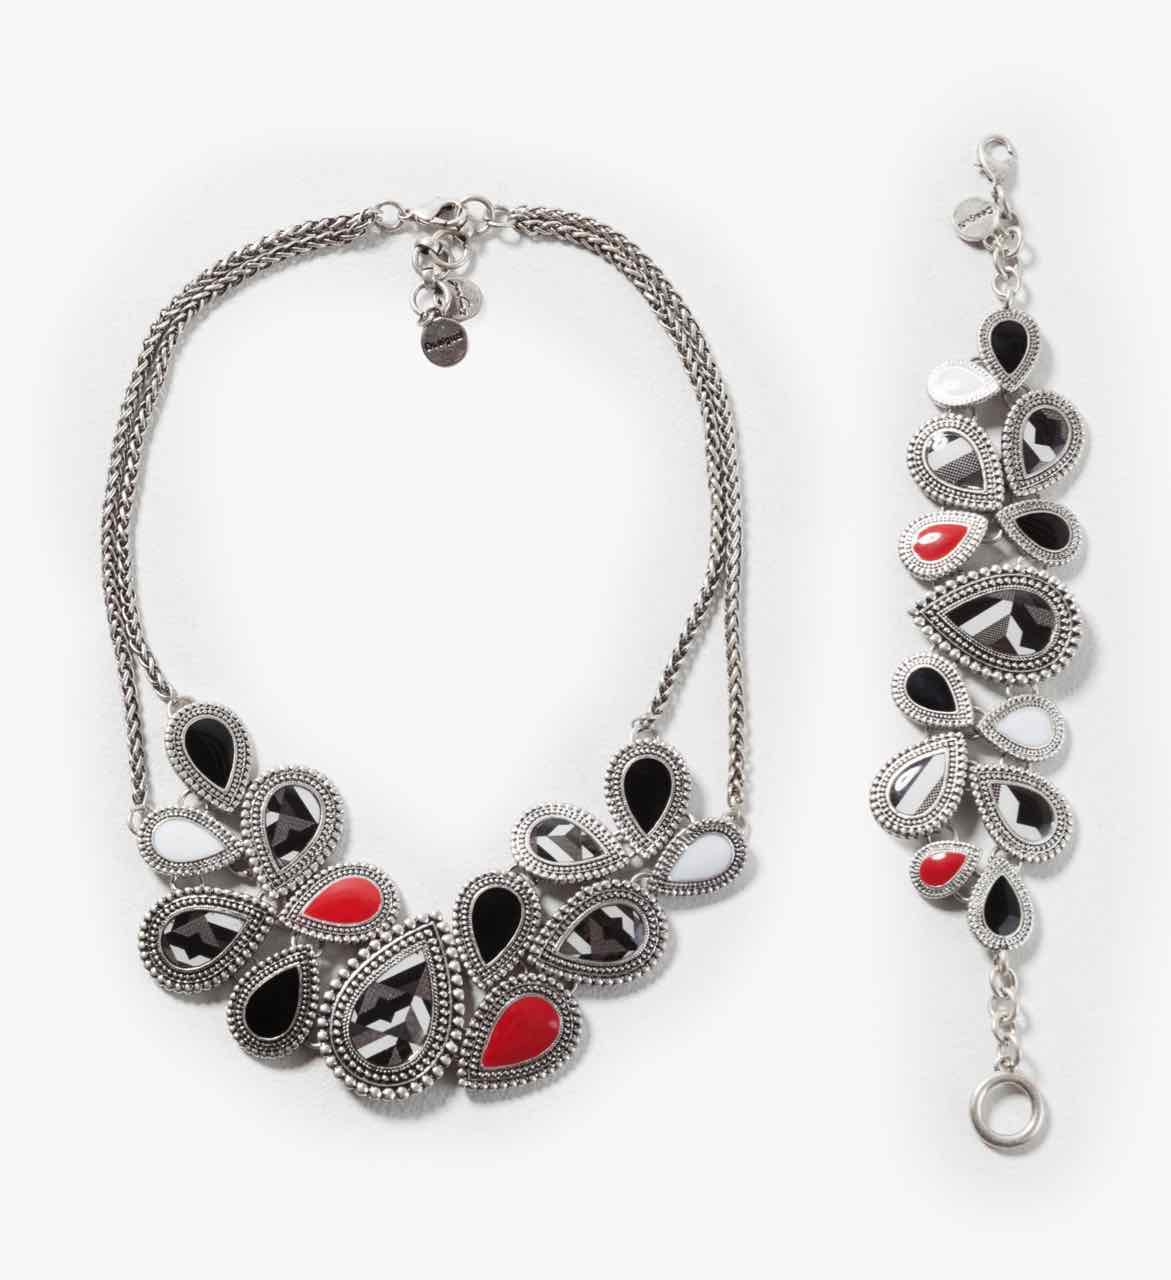 67G55J9_2000-Desigual-Necklace-Bracelet-Set-Pack-Edit